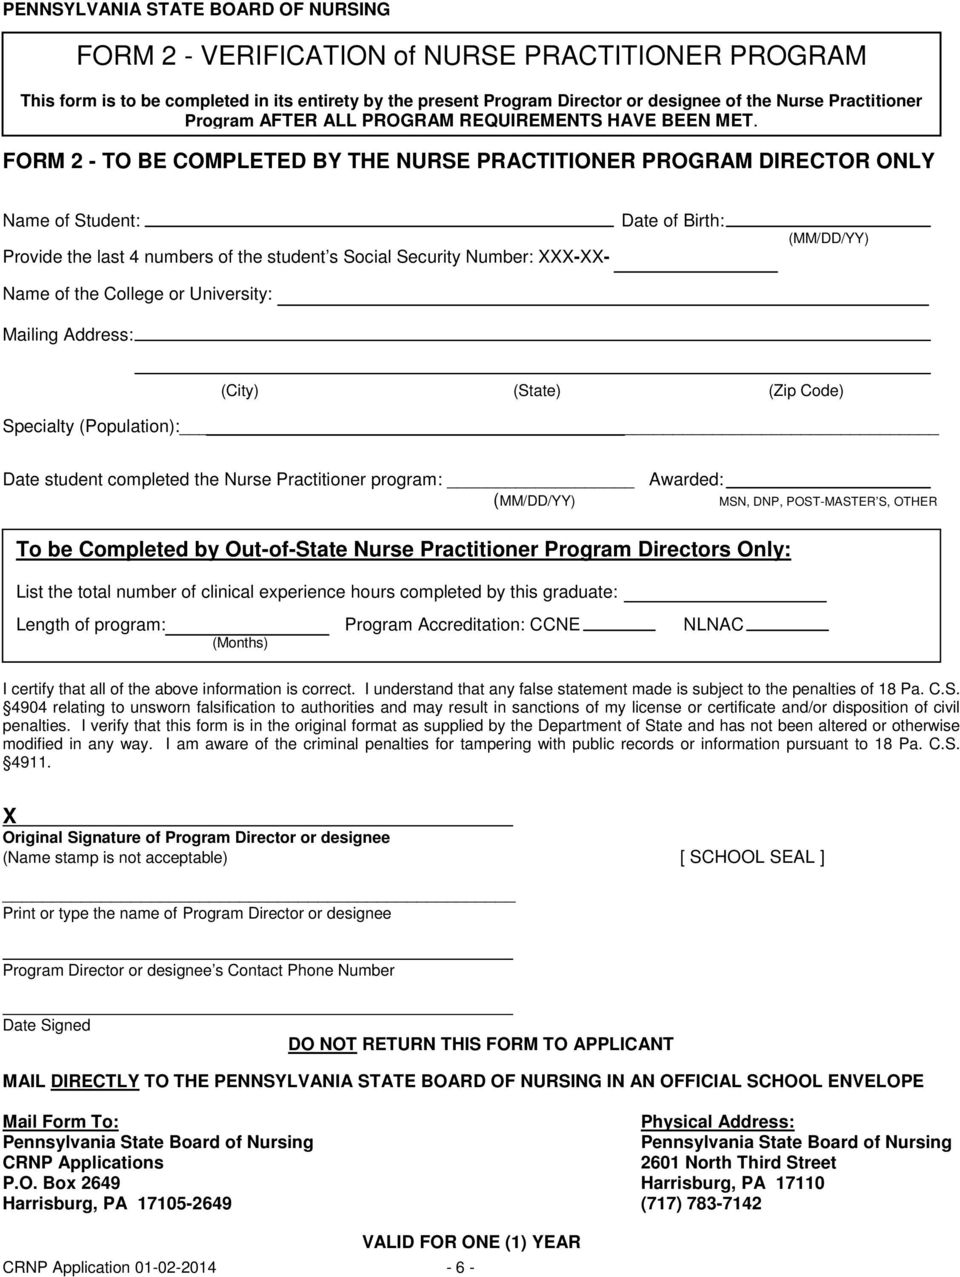 FORM 2 - TO BE COMPLETED BY THE NURSE PRACTITIONER PROGRAM DIRECTOR ONLY Name of Student: Provide the last 4 numbers of the student s Social Security Number: XXX-XX- Name of the College or